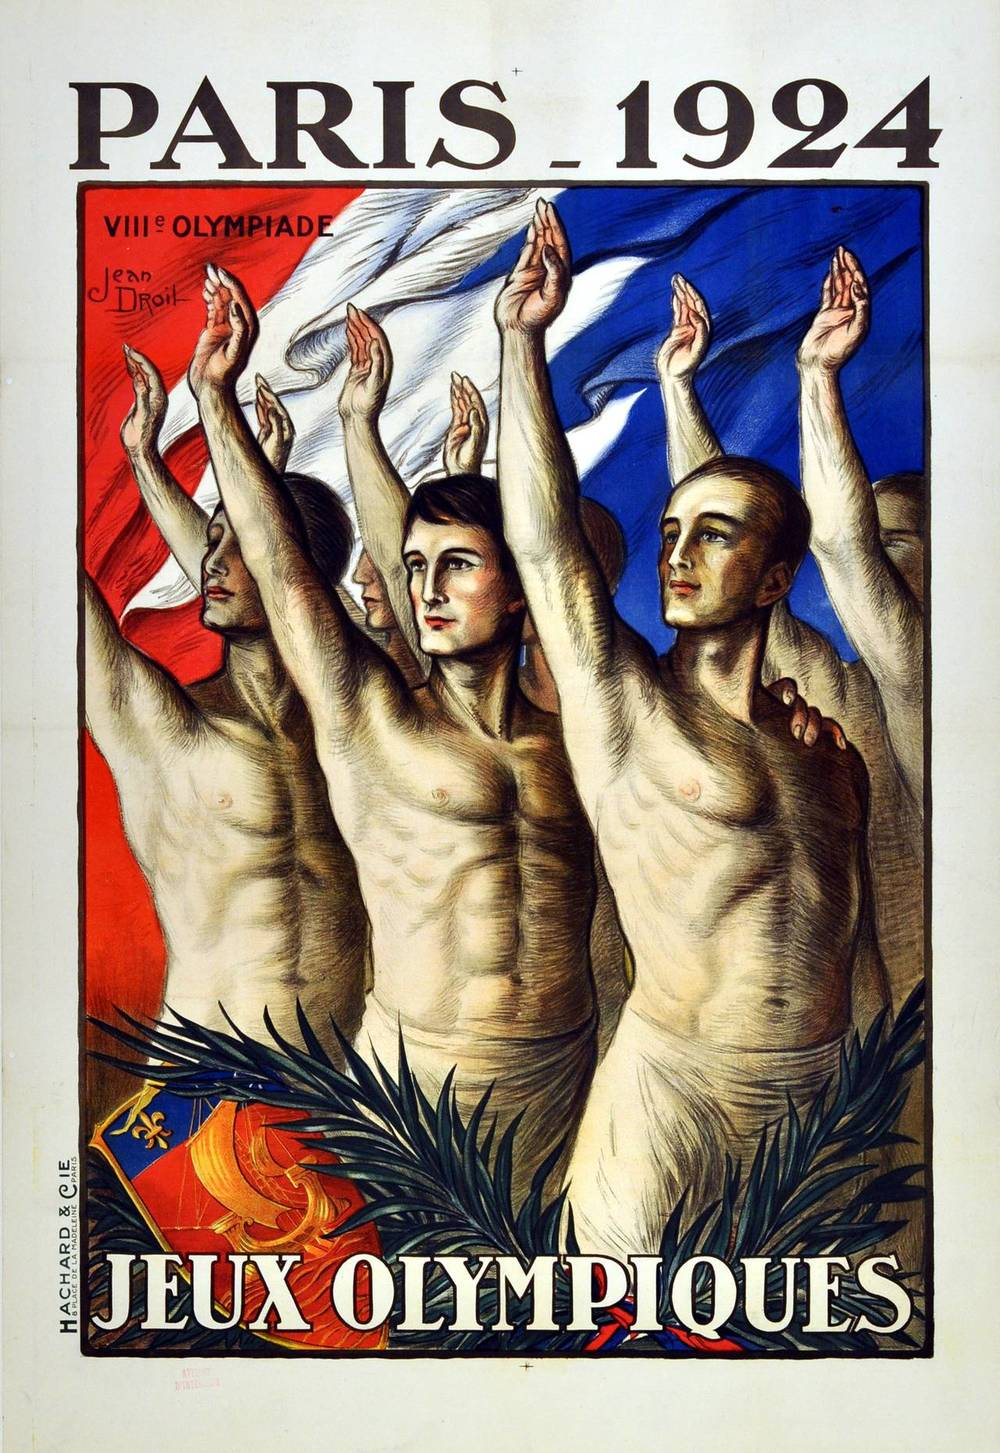 Paris 1924 Art Deco Olympics Poster